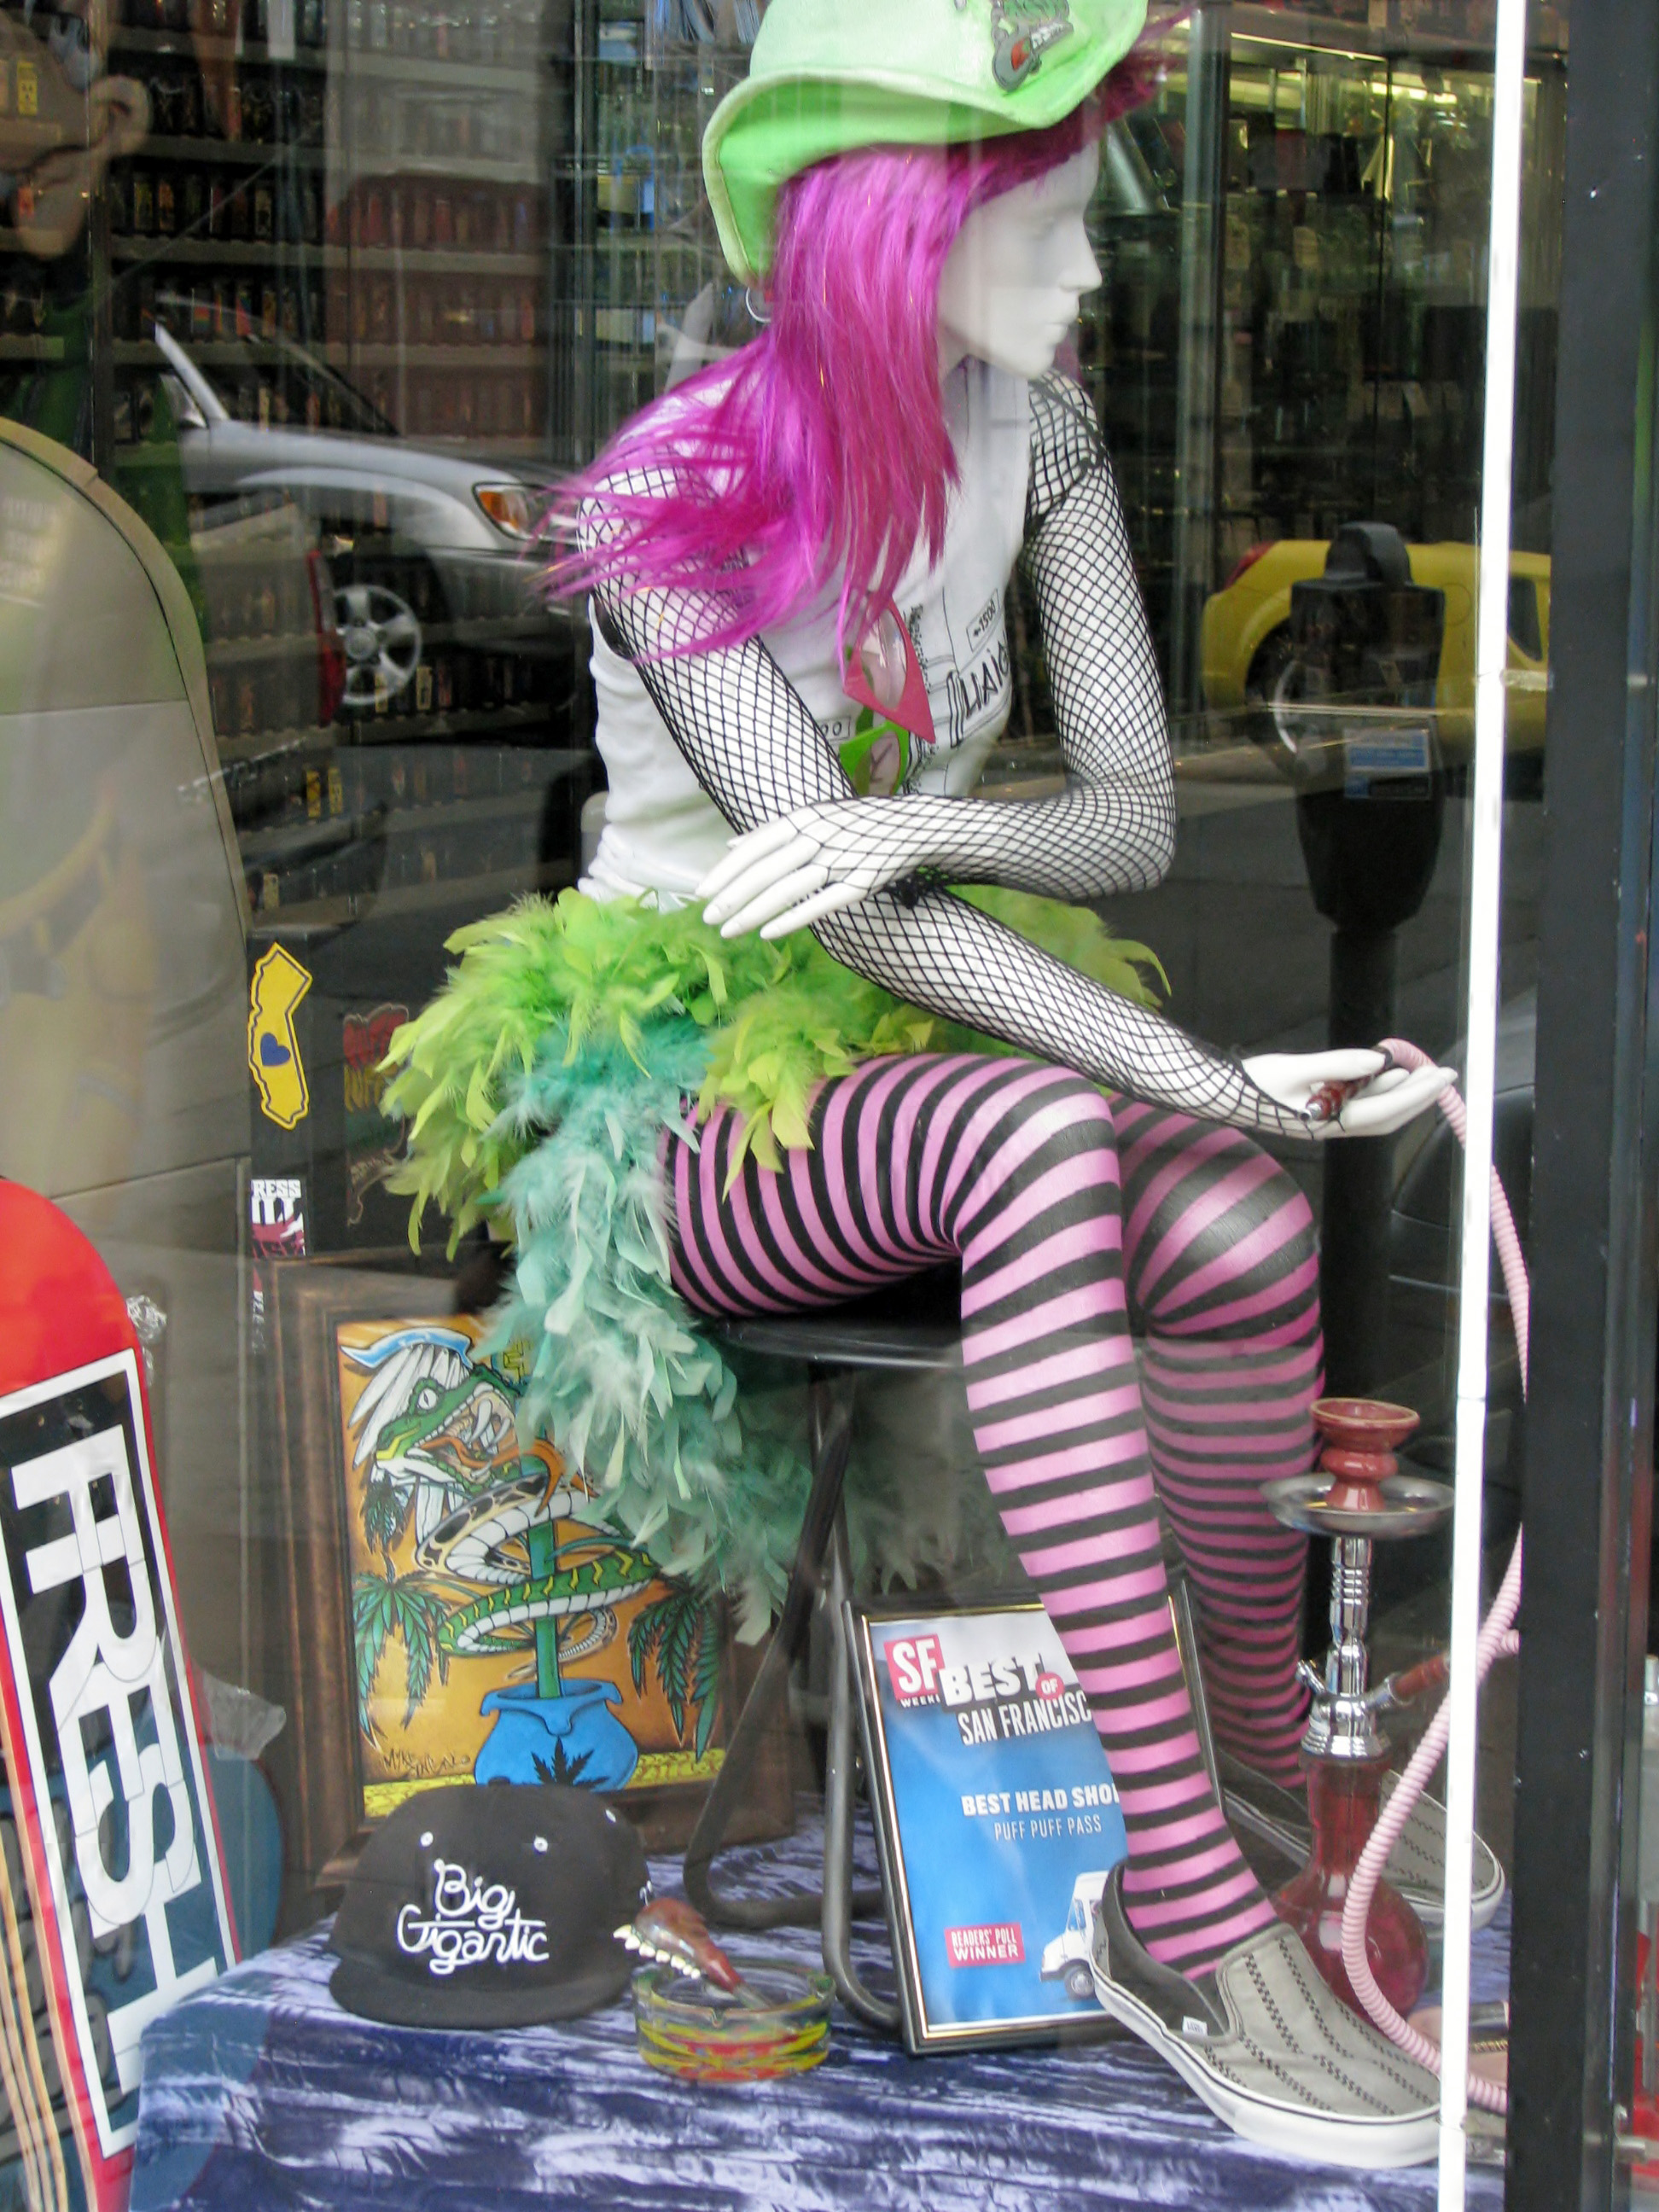 Vintage clothing store - Picture of Haight-Ashbury, San Francisco